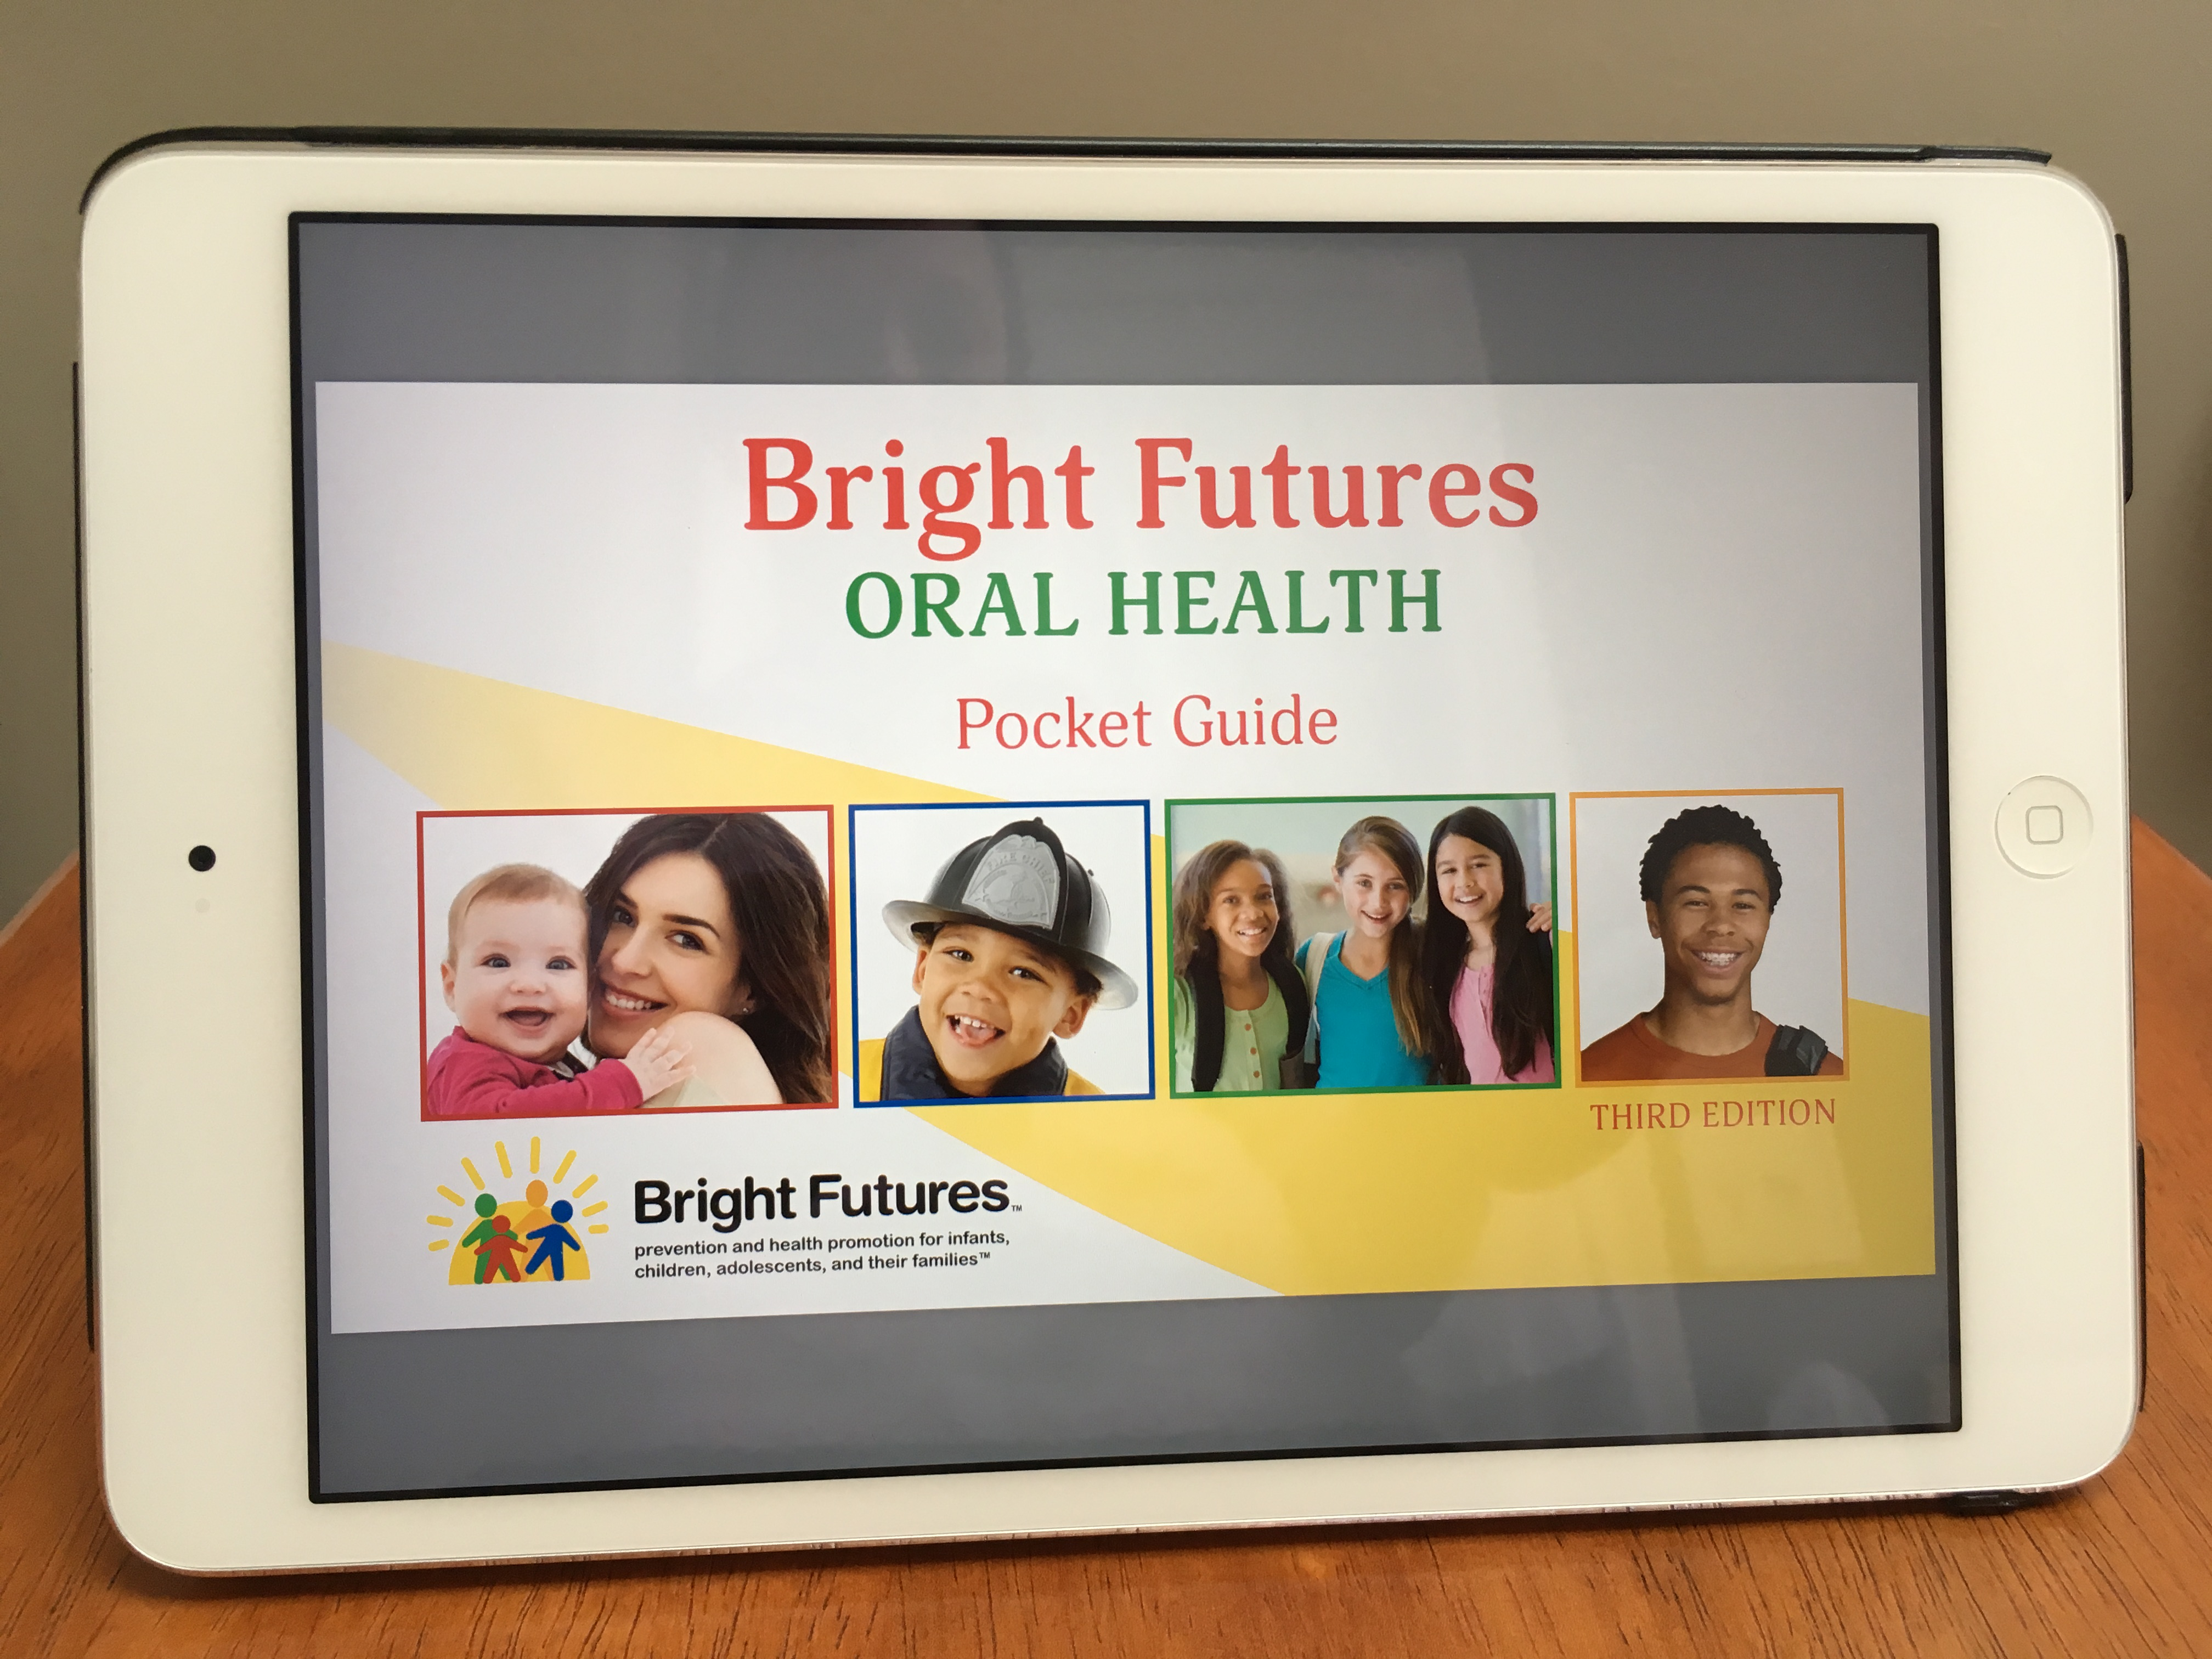 image of Bright Futures Oral Health Pocket Guide on a mobile device